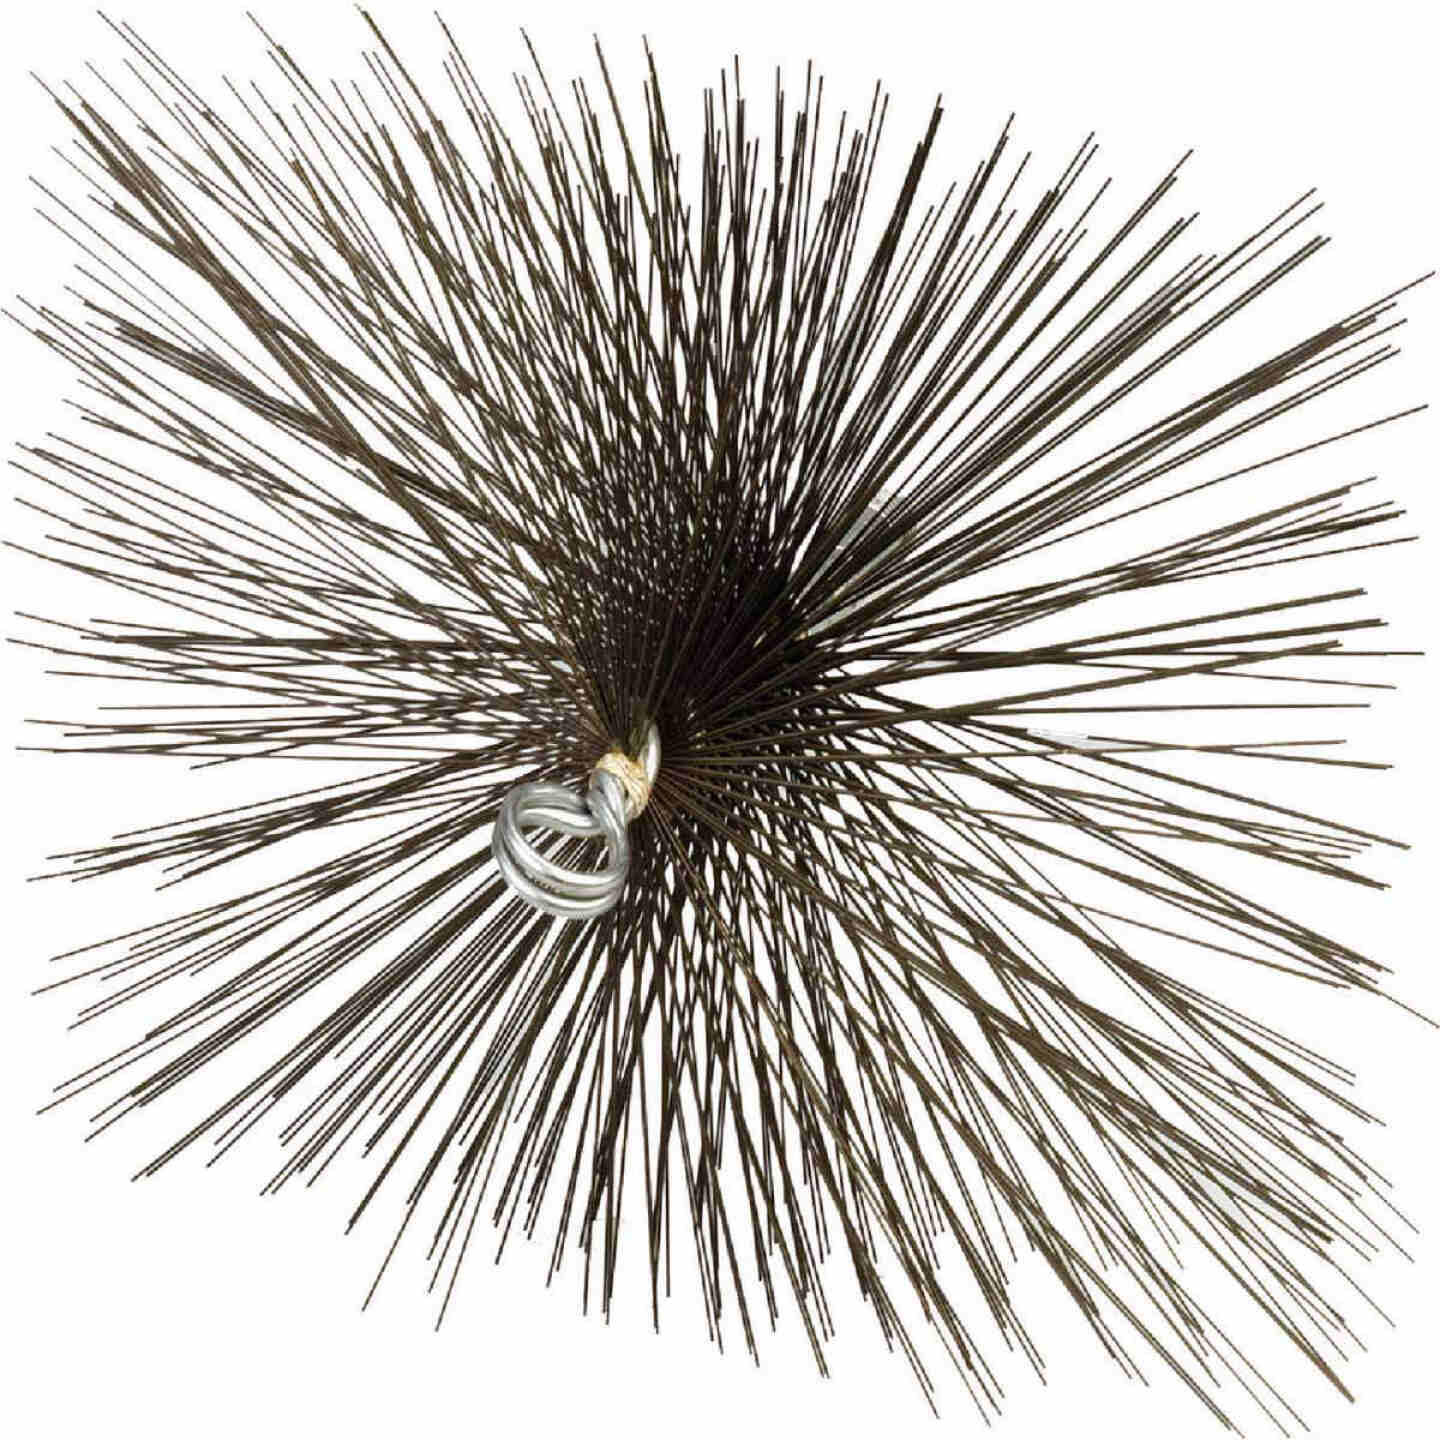 Meeco's Red Devil 12 In. Square Wire Chimney Brush Image 1